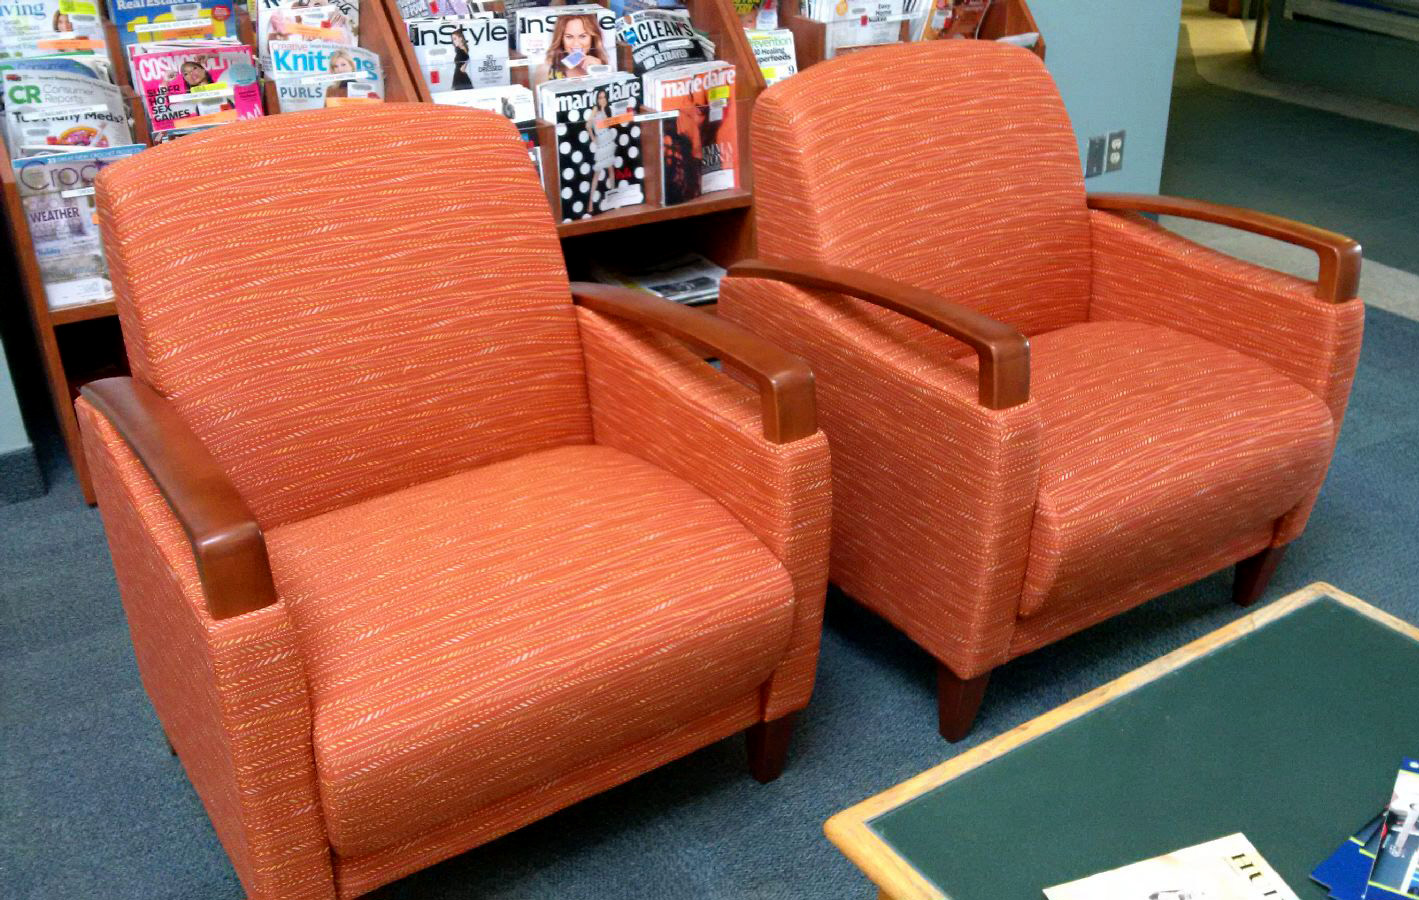 New chairs at Dufferin Clark Library